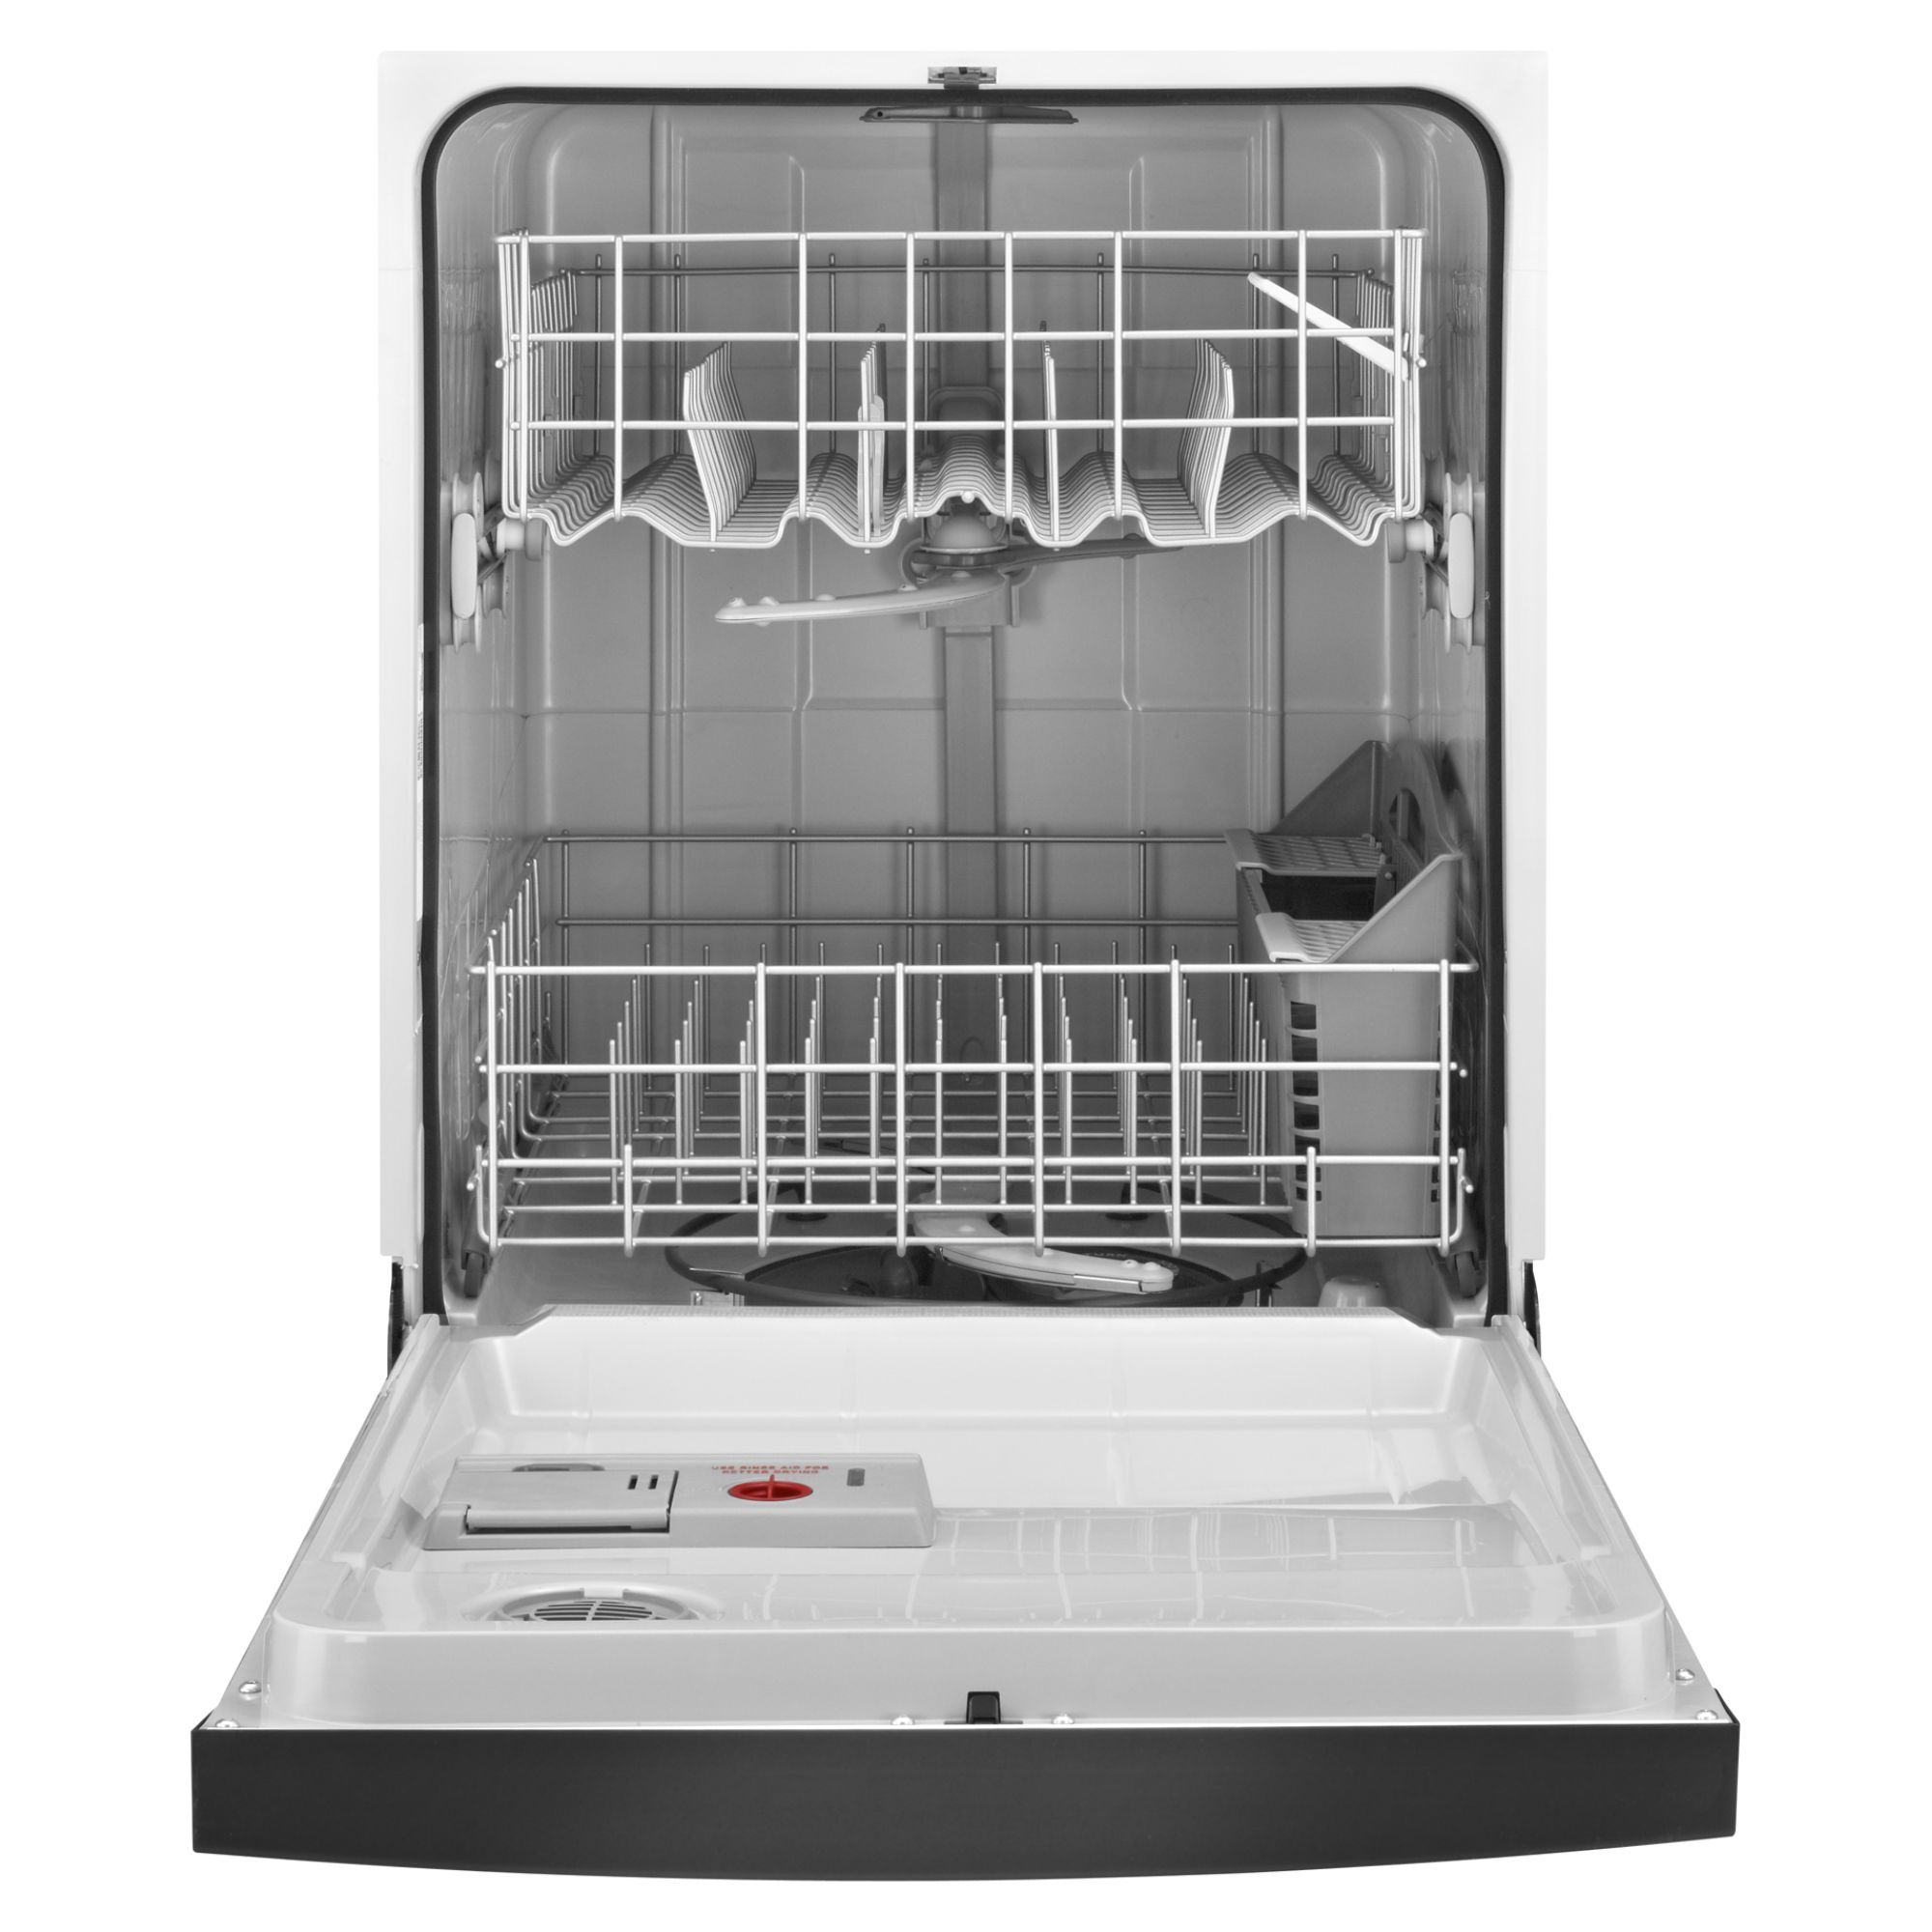 "Kenmore 24"" Built-In Dishwasher w/ Sani-Rinse™ - Stainless Steel"